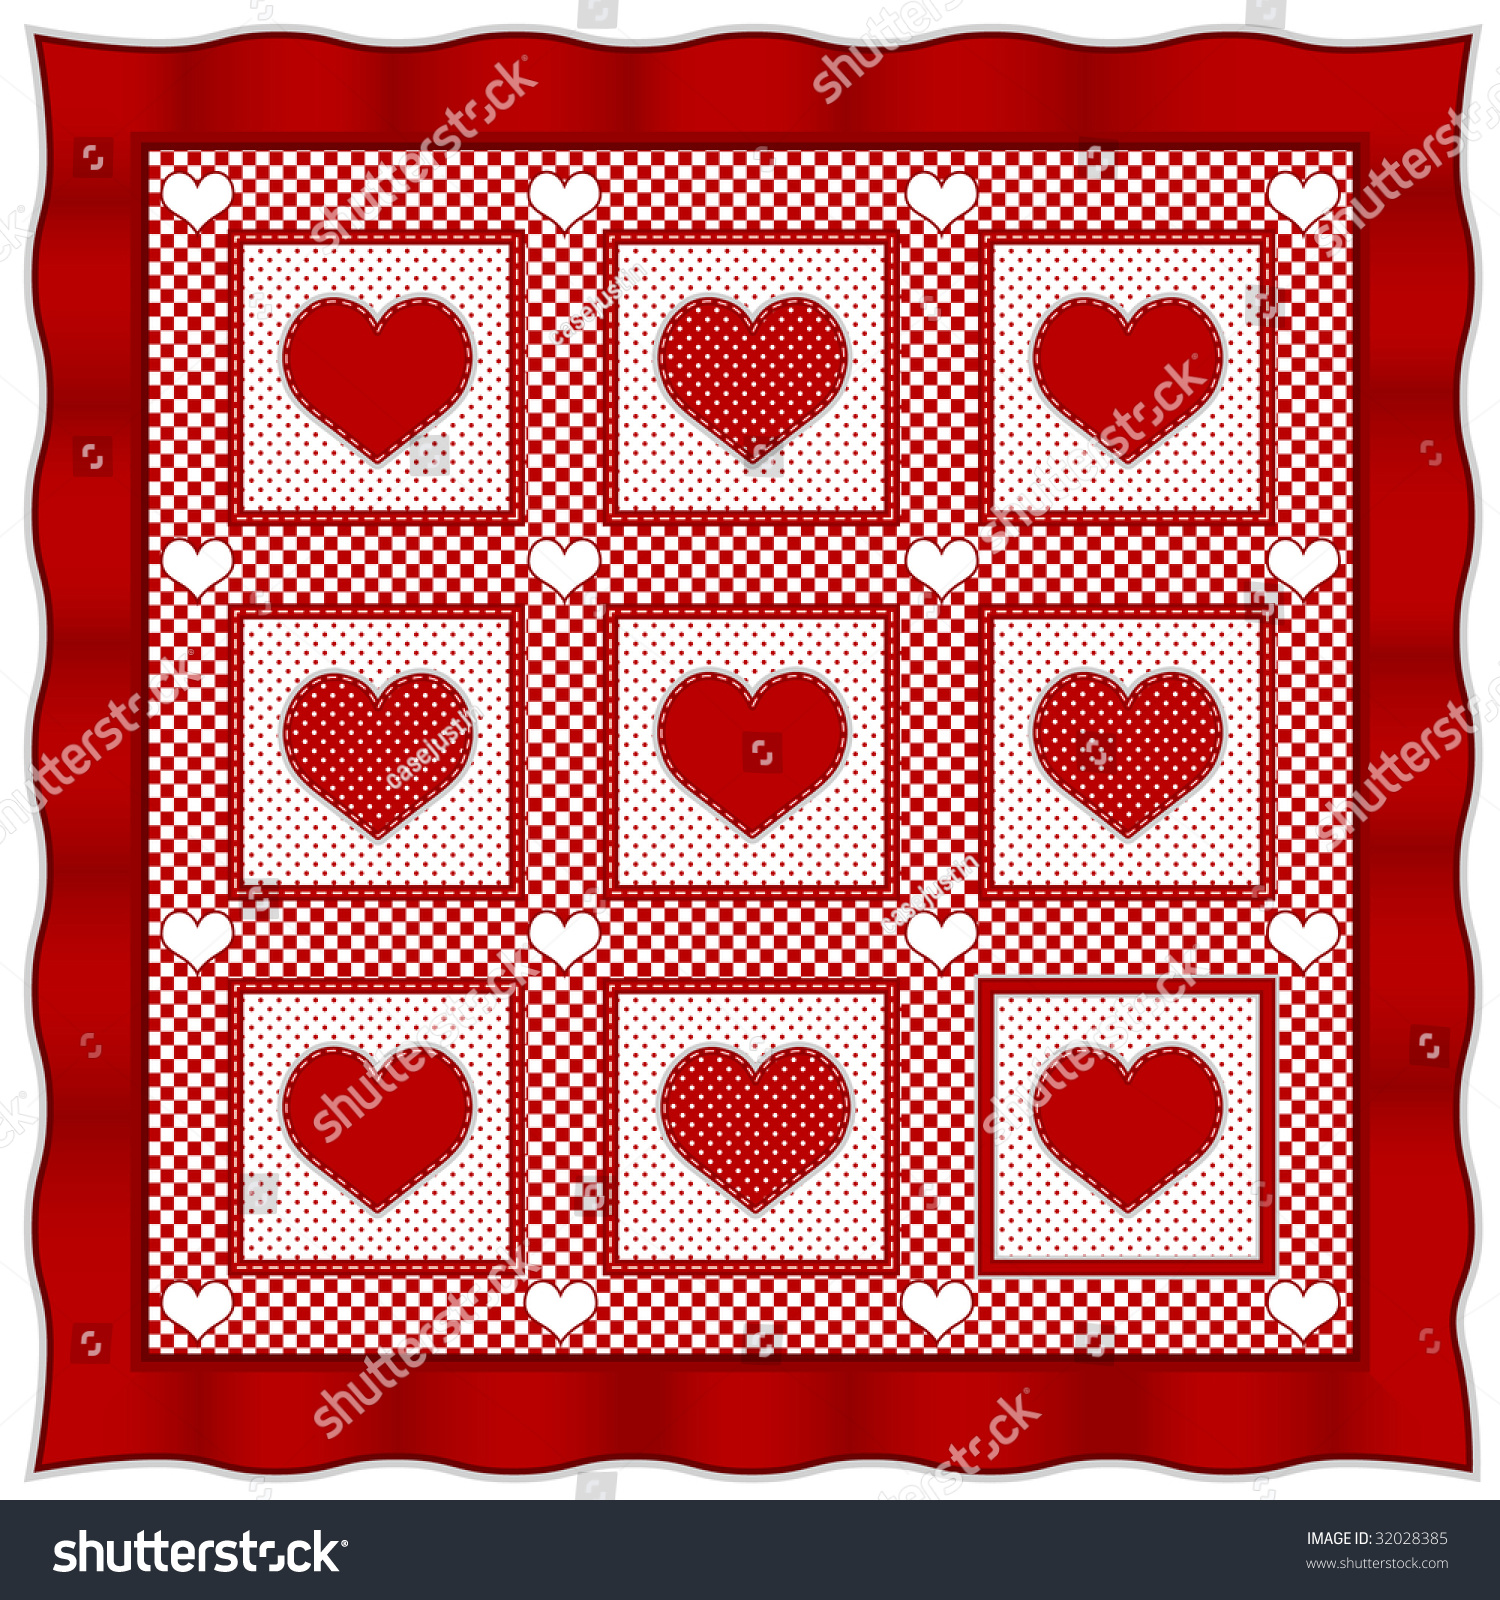 Quilt heart of hearts design pattern old fashioned for Red door design quilts